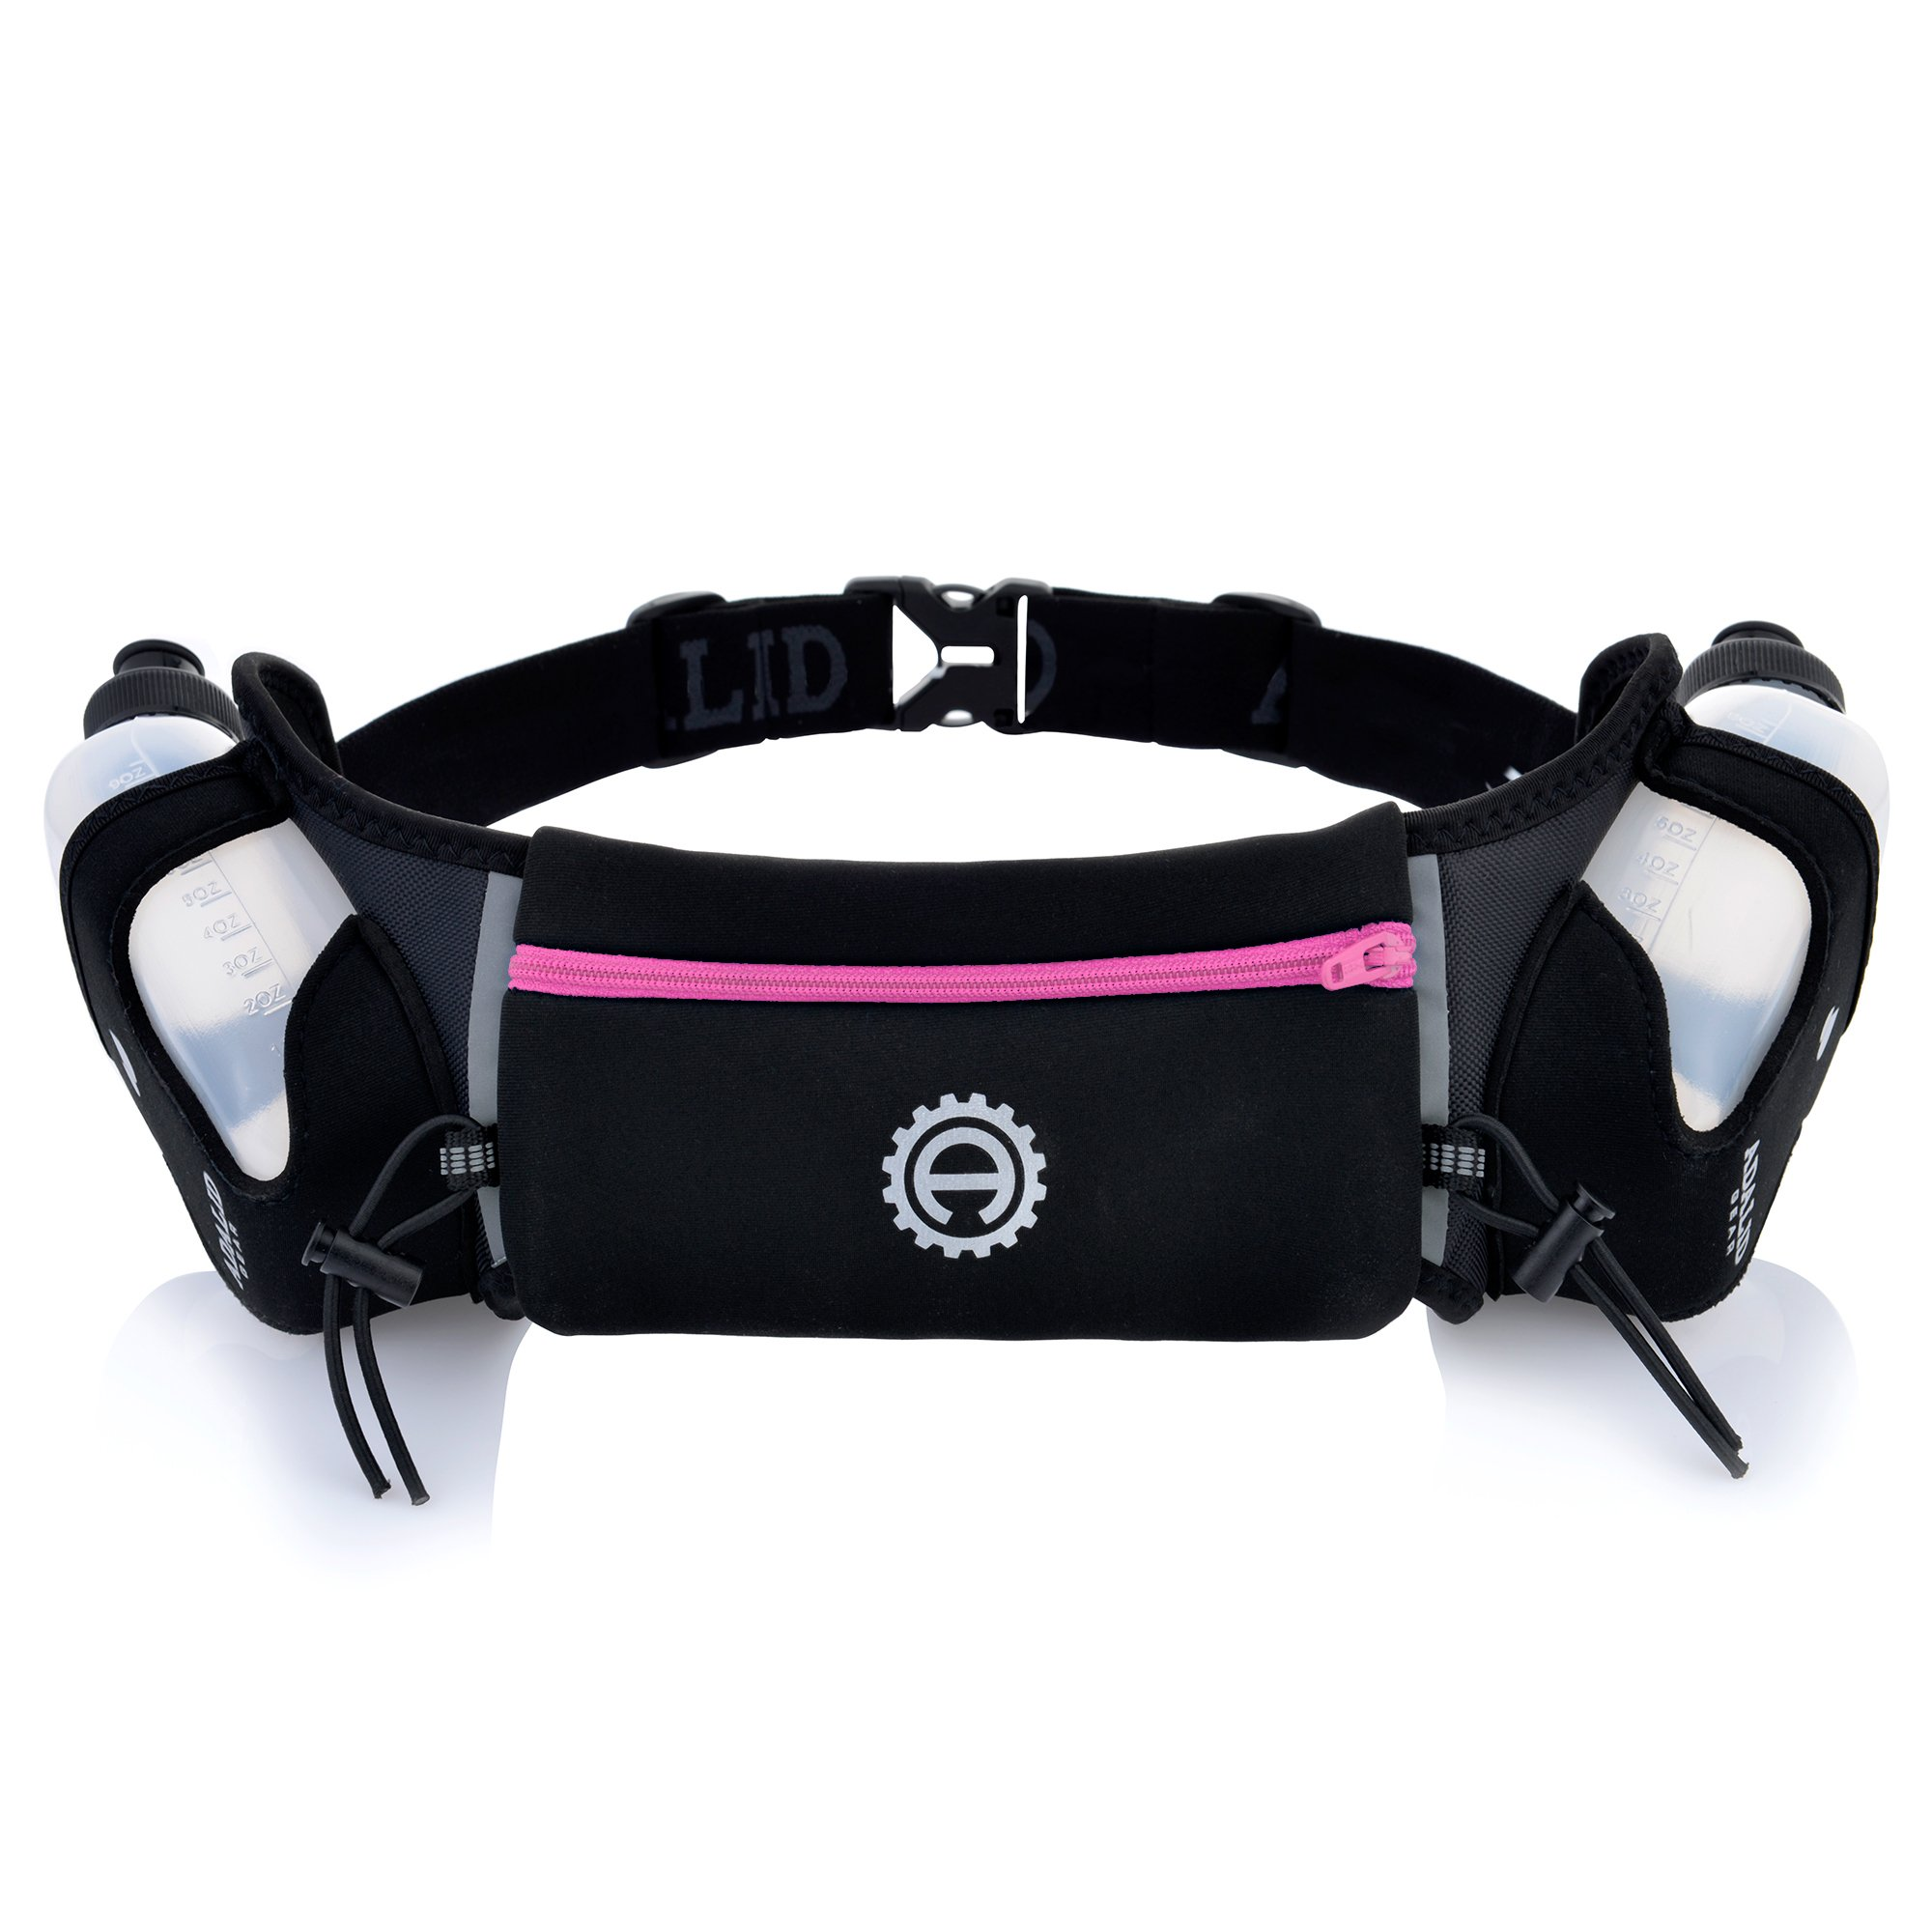 Hydration Belt for Running - Includes Accessories and Two 10-Ounce BPA-Free and